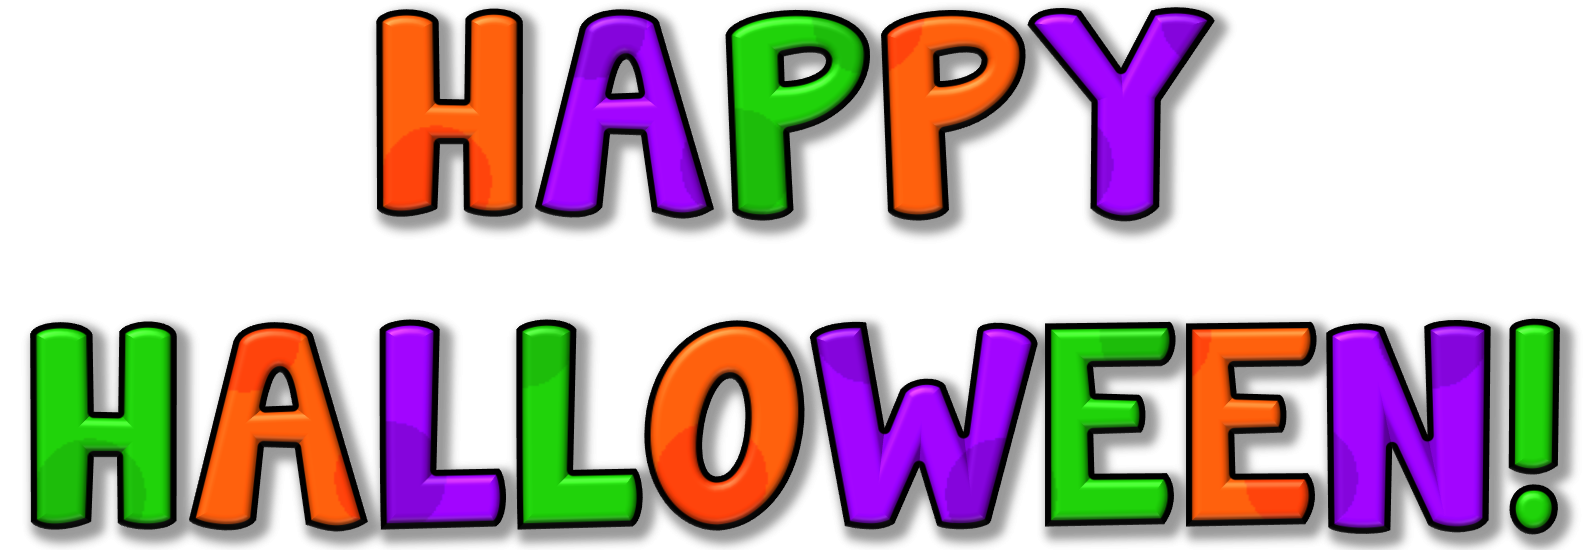 Happy halloween clipart black and white png royalty free download Halloween Pictures Clipart at GetDrawings.com | Free for personal ... png royalty free download